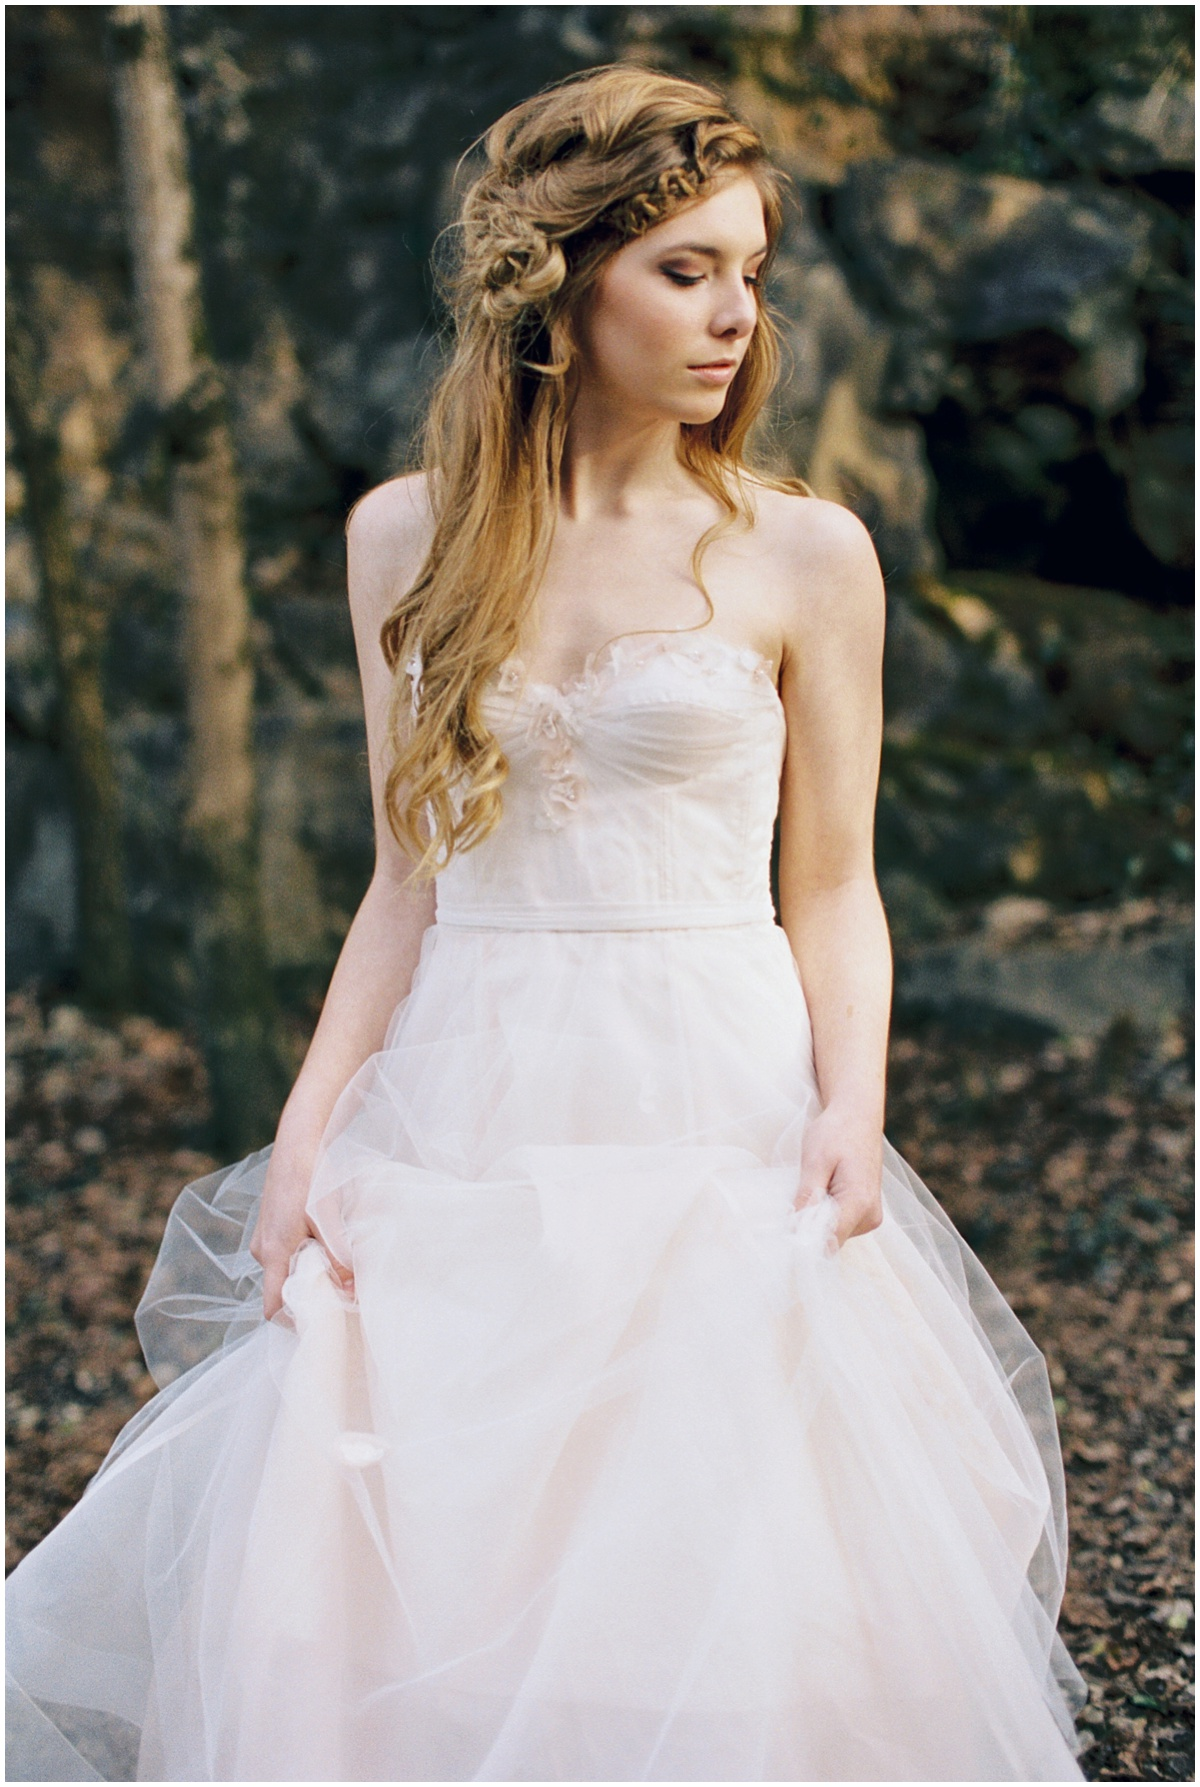 Abigail_Malone_Film_Wedding_Photography_KNoxville_TN_Blush_Dress_Outdoor_Windy_Pink_and_Green_Wedding_0005.jpg